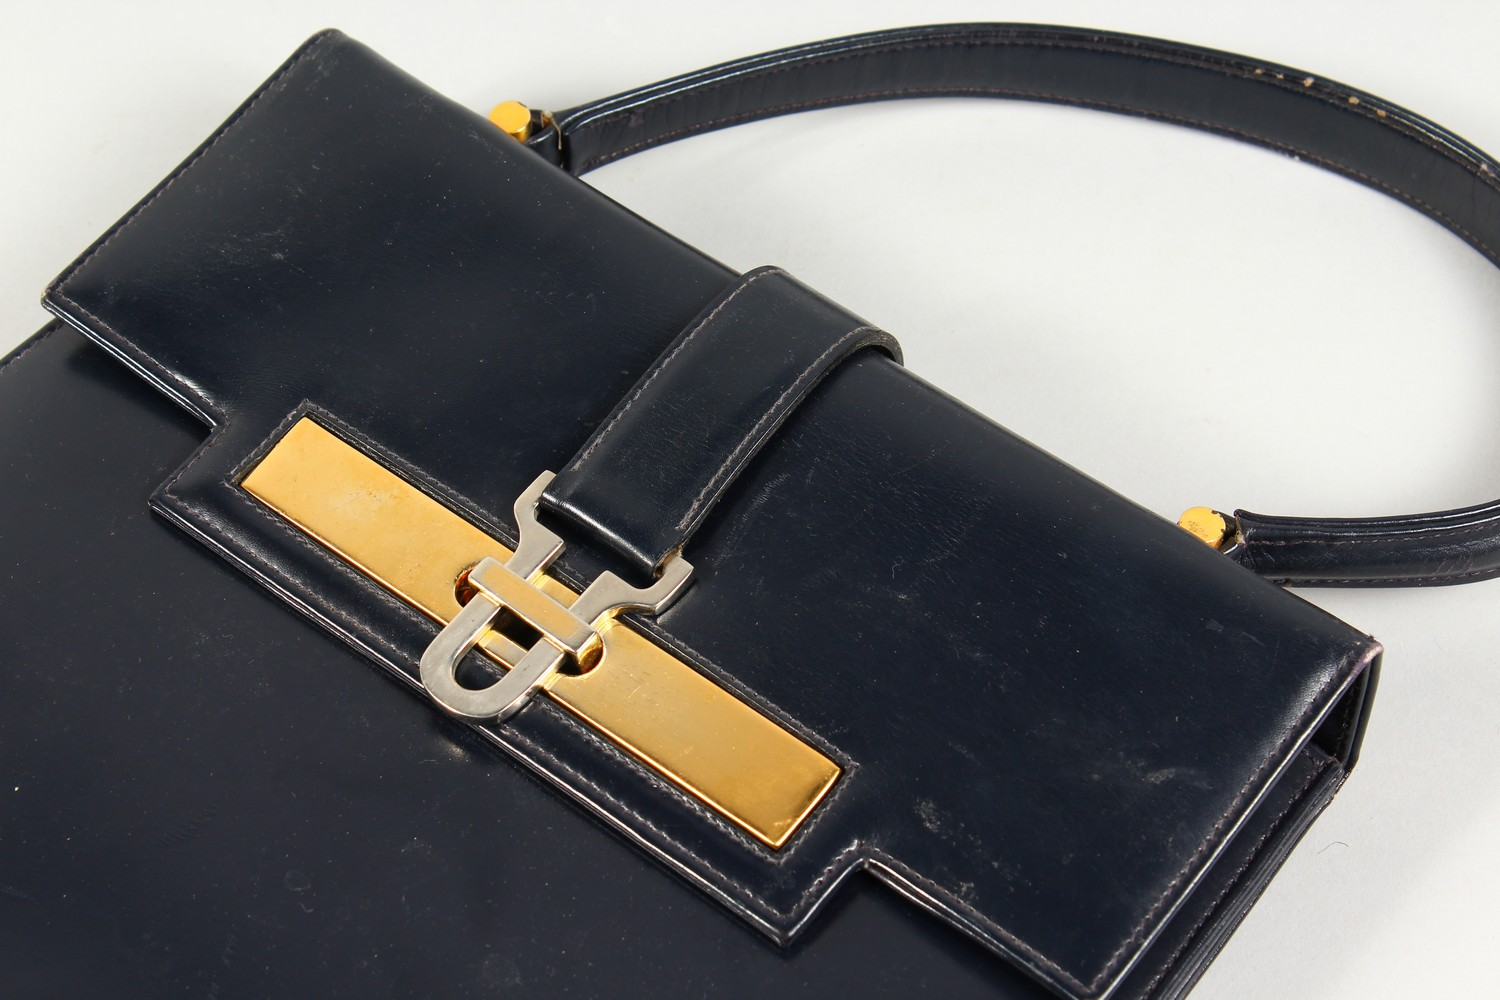 ALGERNON ASPREY, a ladies black leather handbag, and two other bags. - Image 13 of 16